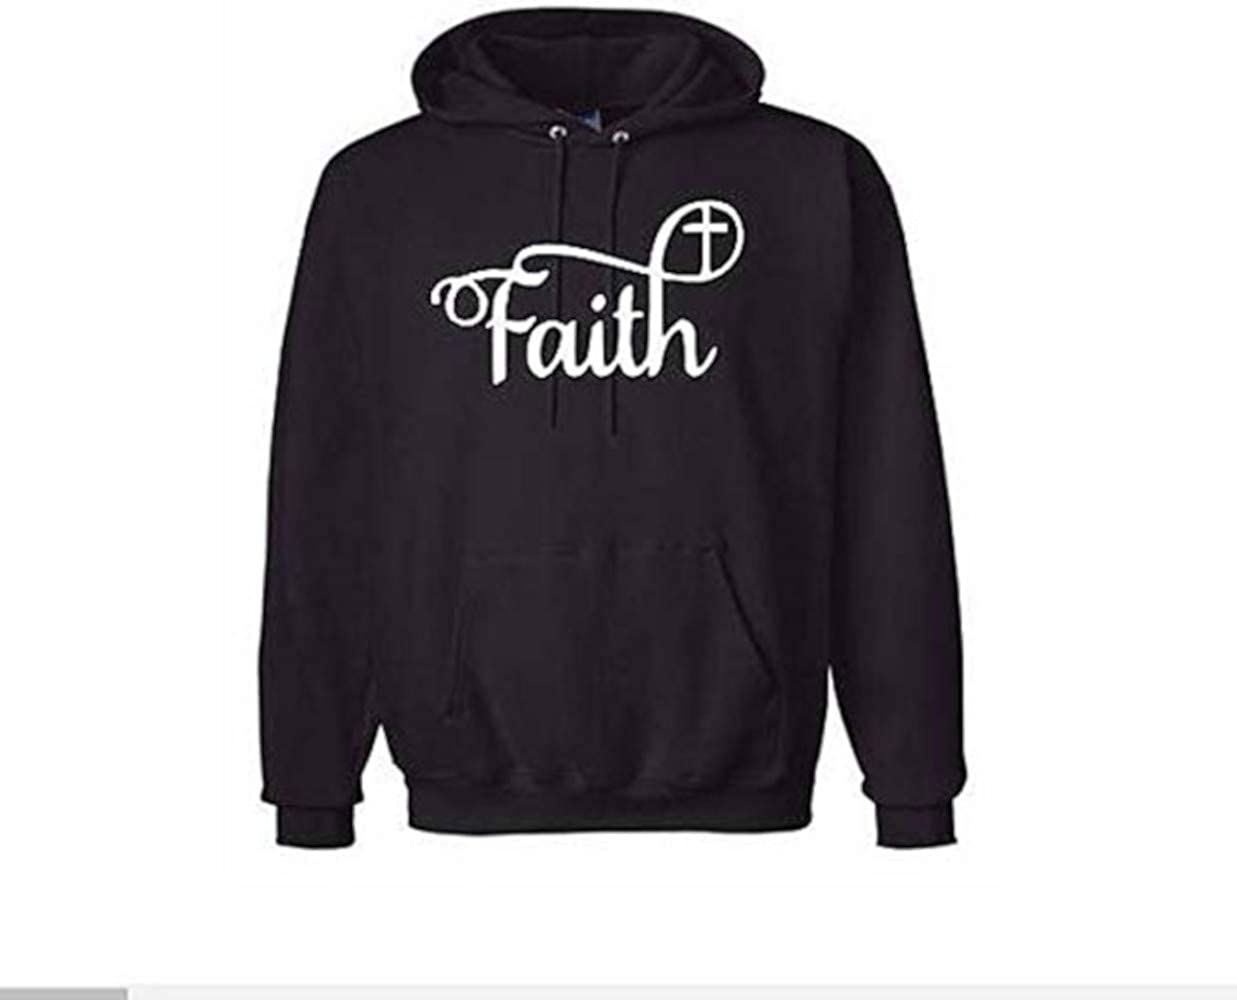 Merch Massacre Faith Religious Cross Unisex Hoodie Pullover Hooded Sweatshirt Many Sizes Colors Horror Halloween